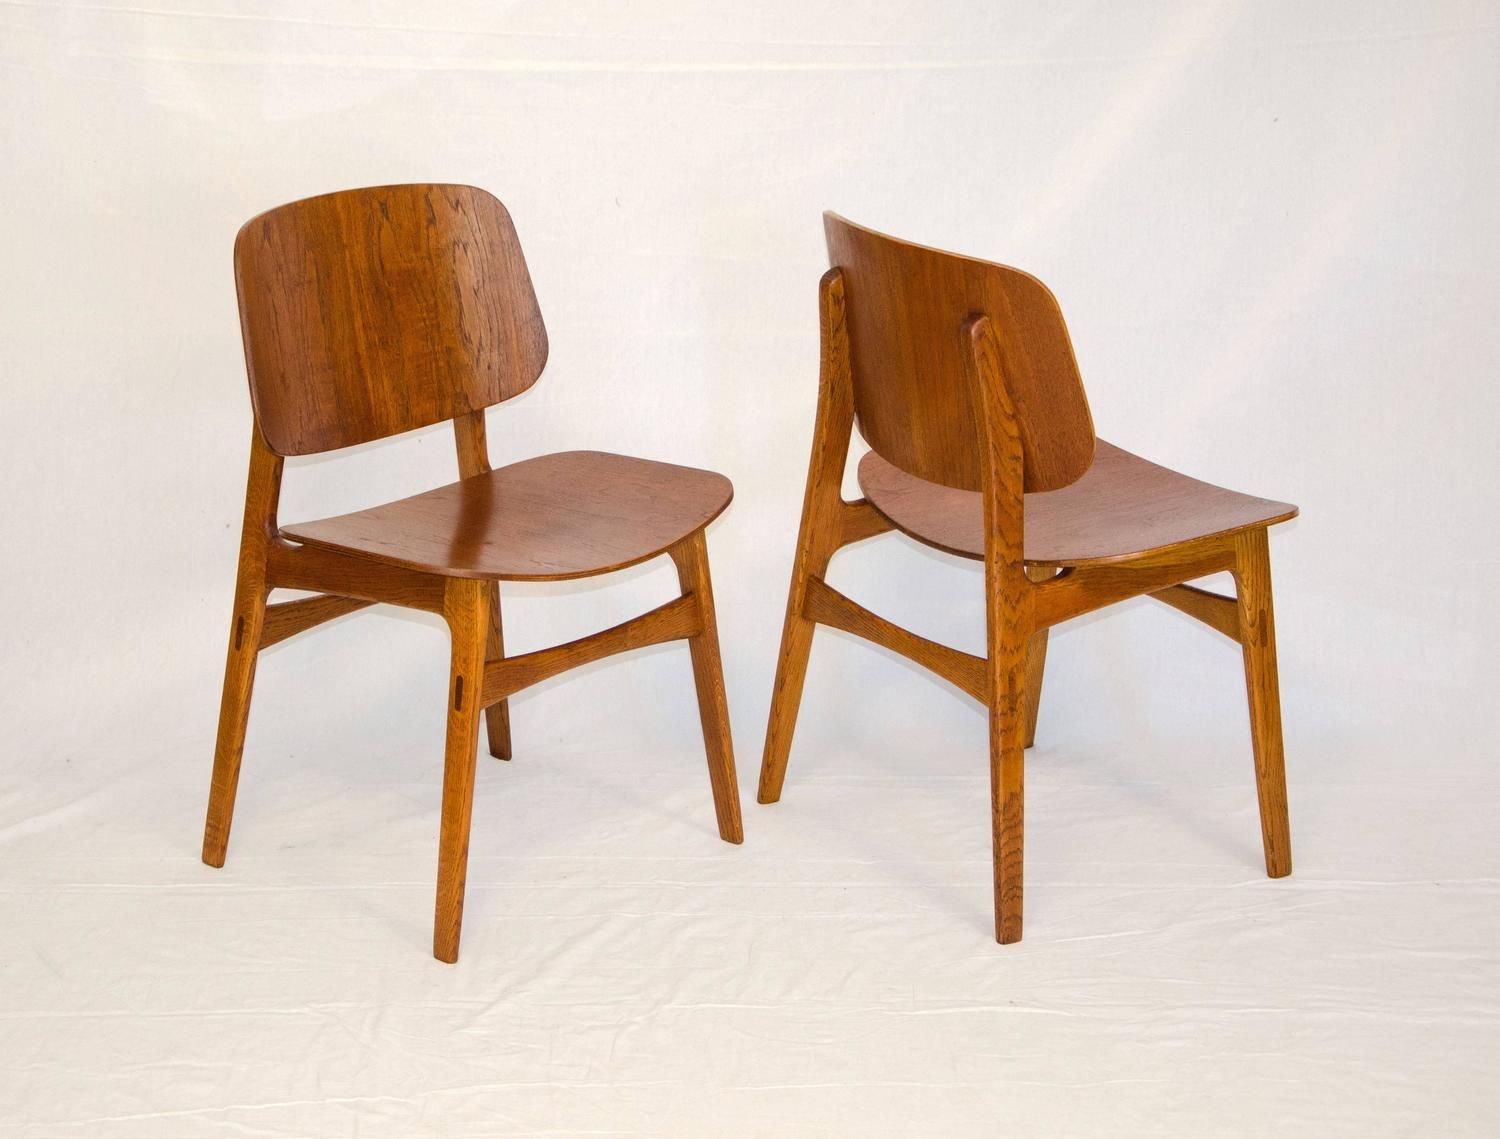 Commercial Dining Room Chairs Enchanting Set Of Six Bent Ply Teak And Oak Chairsbørge Mogensen  Teak Design Decoration